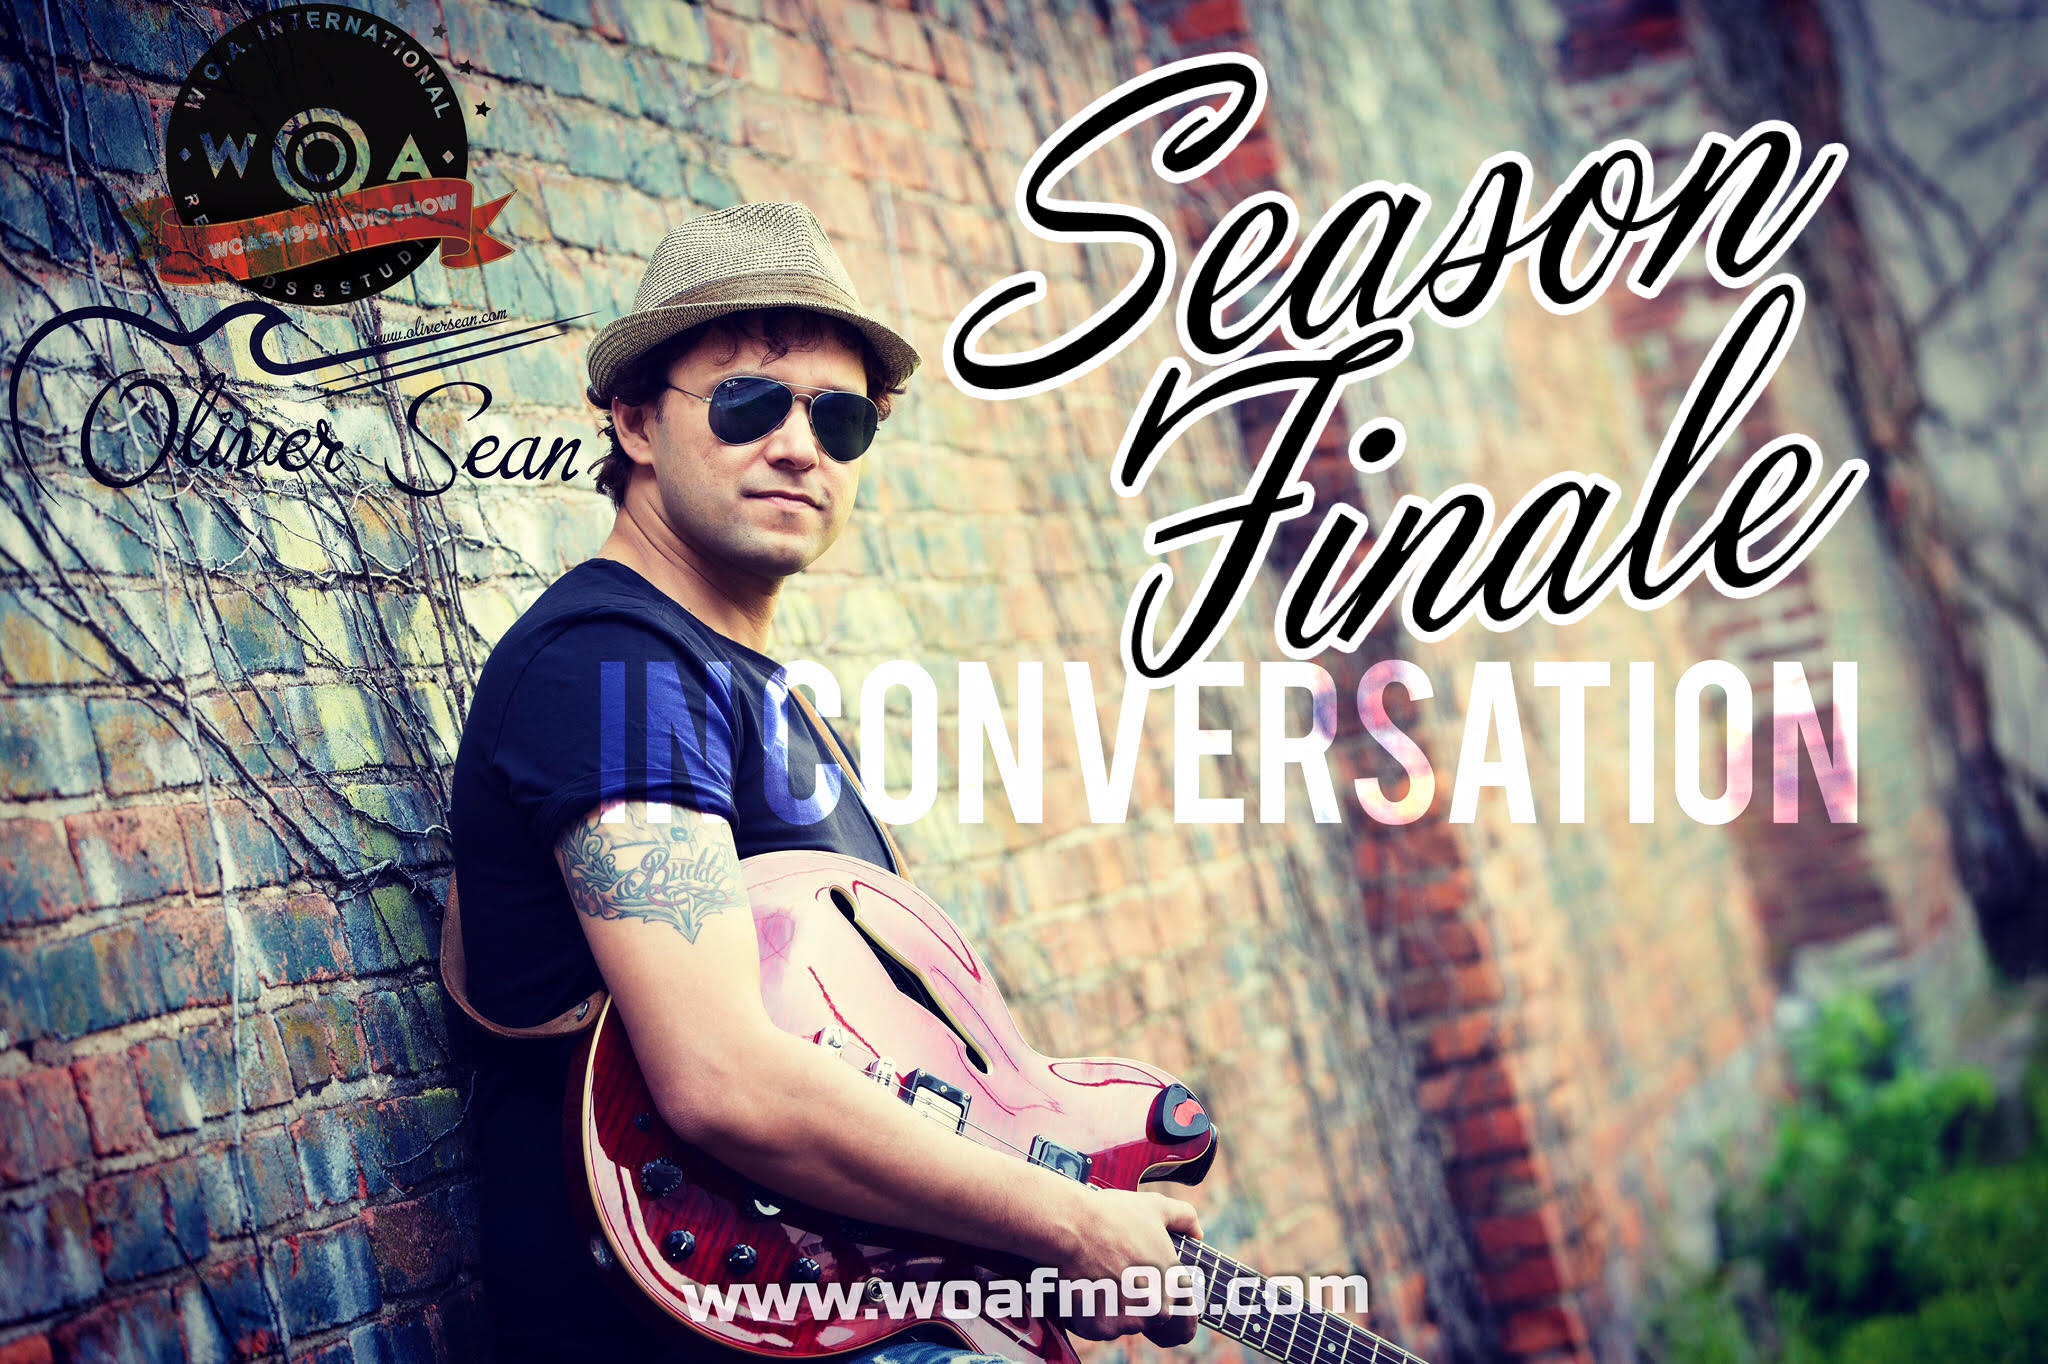 SEASON 12 FINALÉ - WOAFM99 Radio Show with Oliver Sean